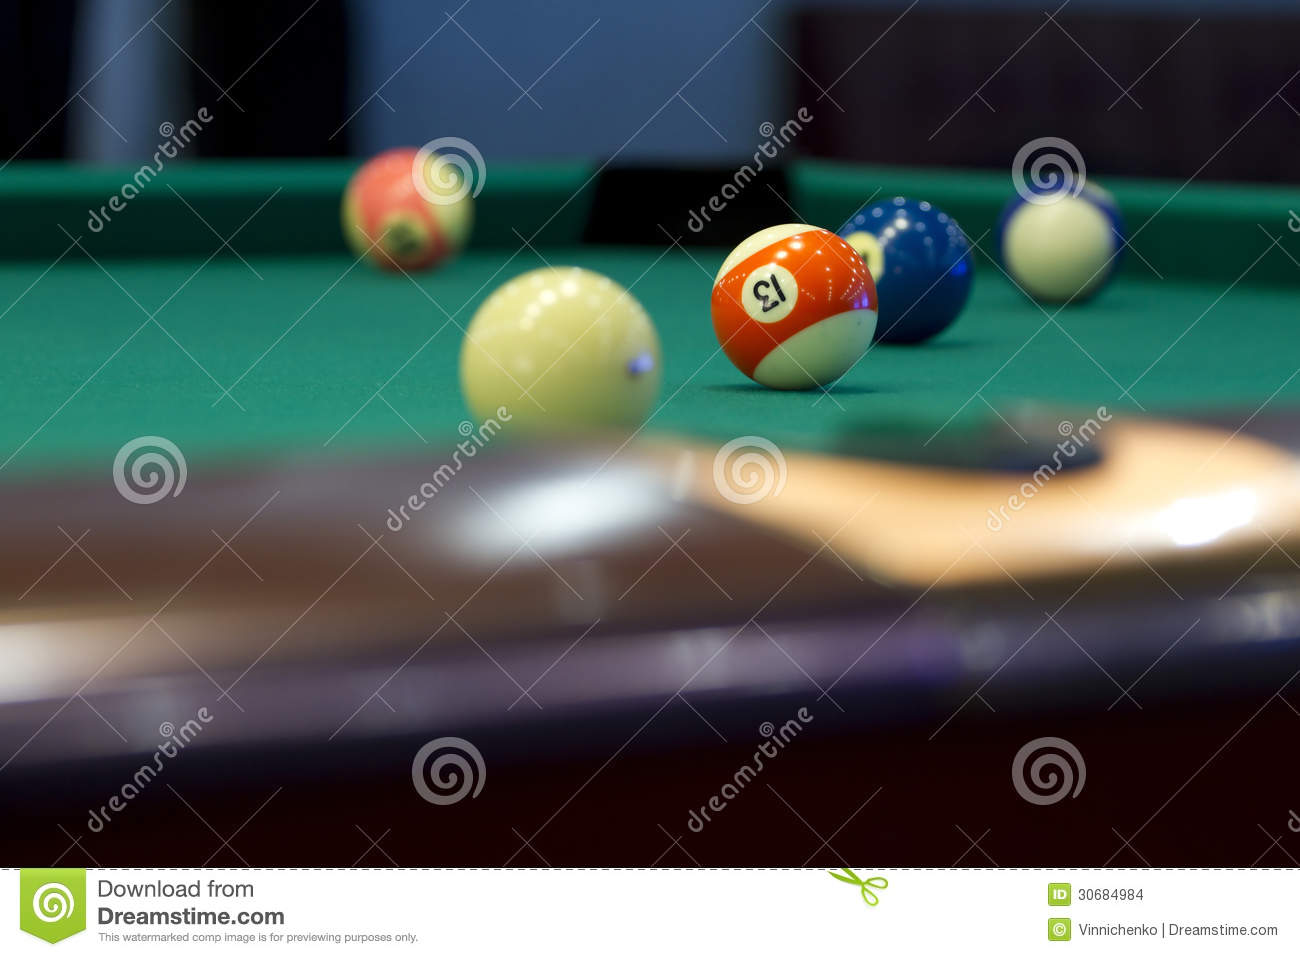 Part of the American pool table with balls.